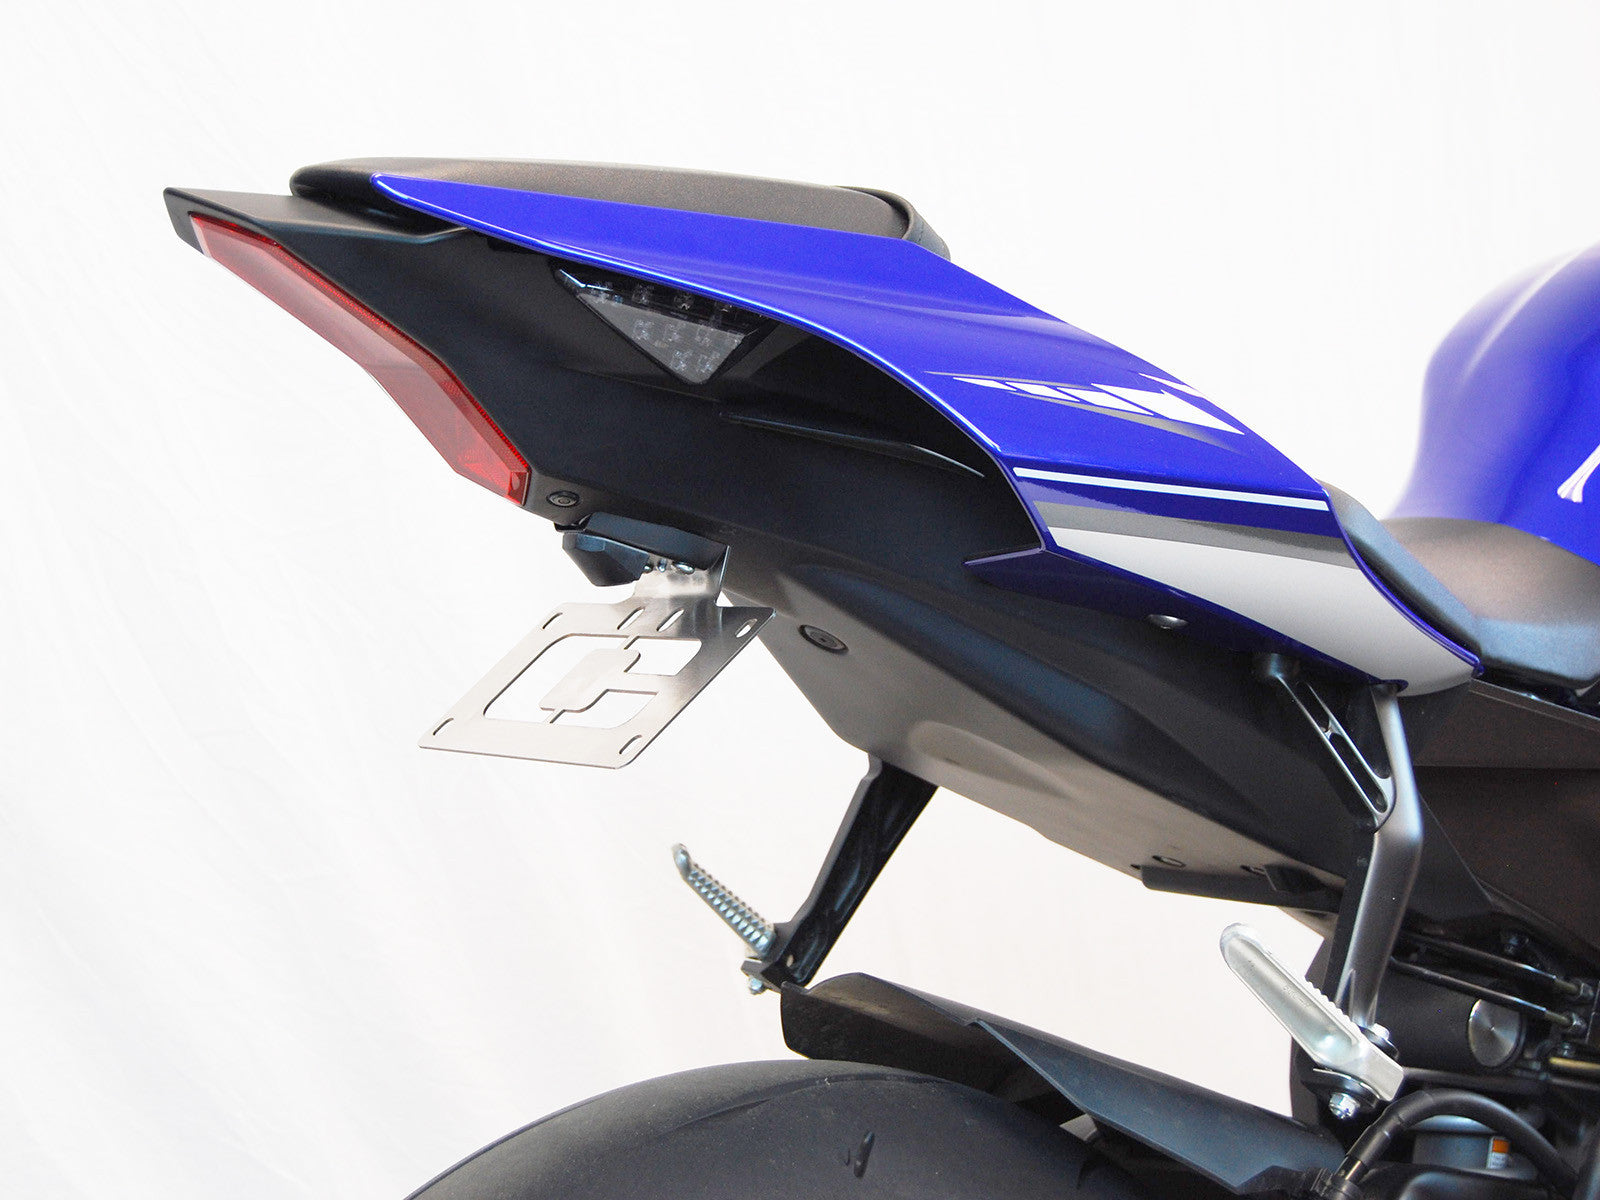 xt660z tail tidy instructions